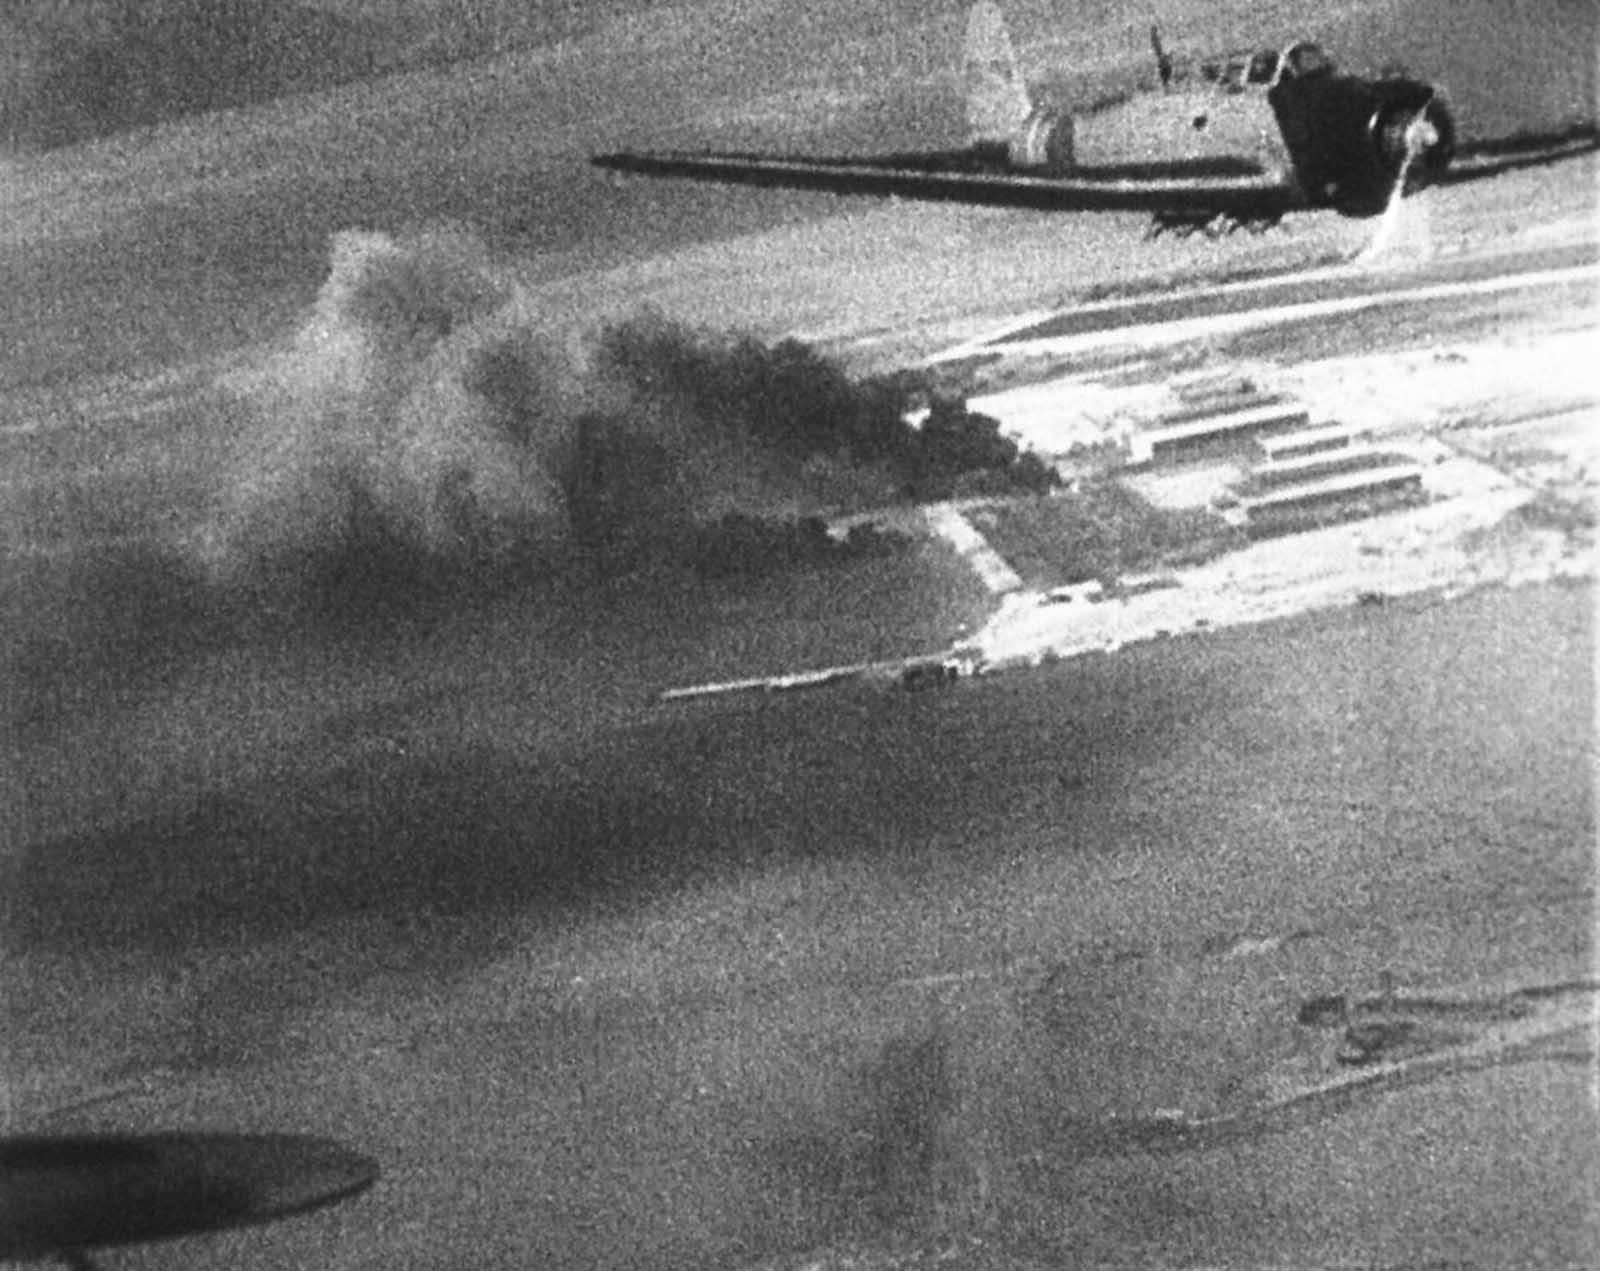 Japanese planes over Hawaii during the attack on Pearl Harbor are shown in this scene from a Japanese newsreel. The film was obtained by the U.S. War Department and later released to U.S. newsreels.